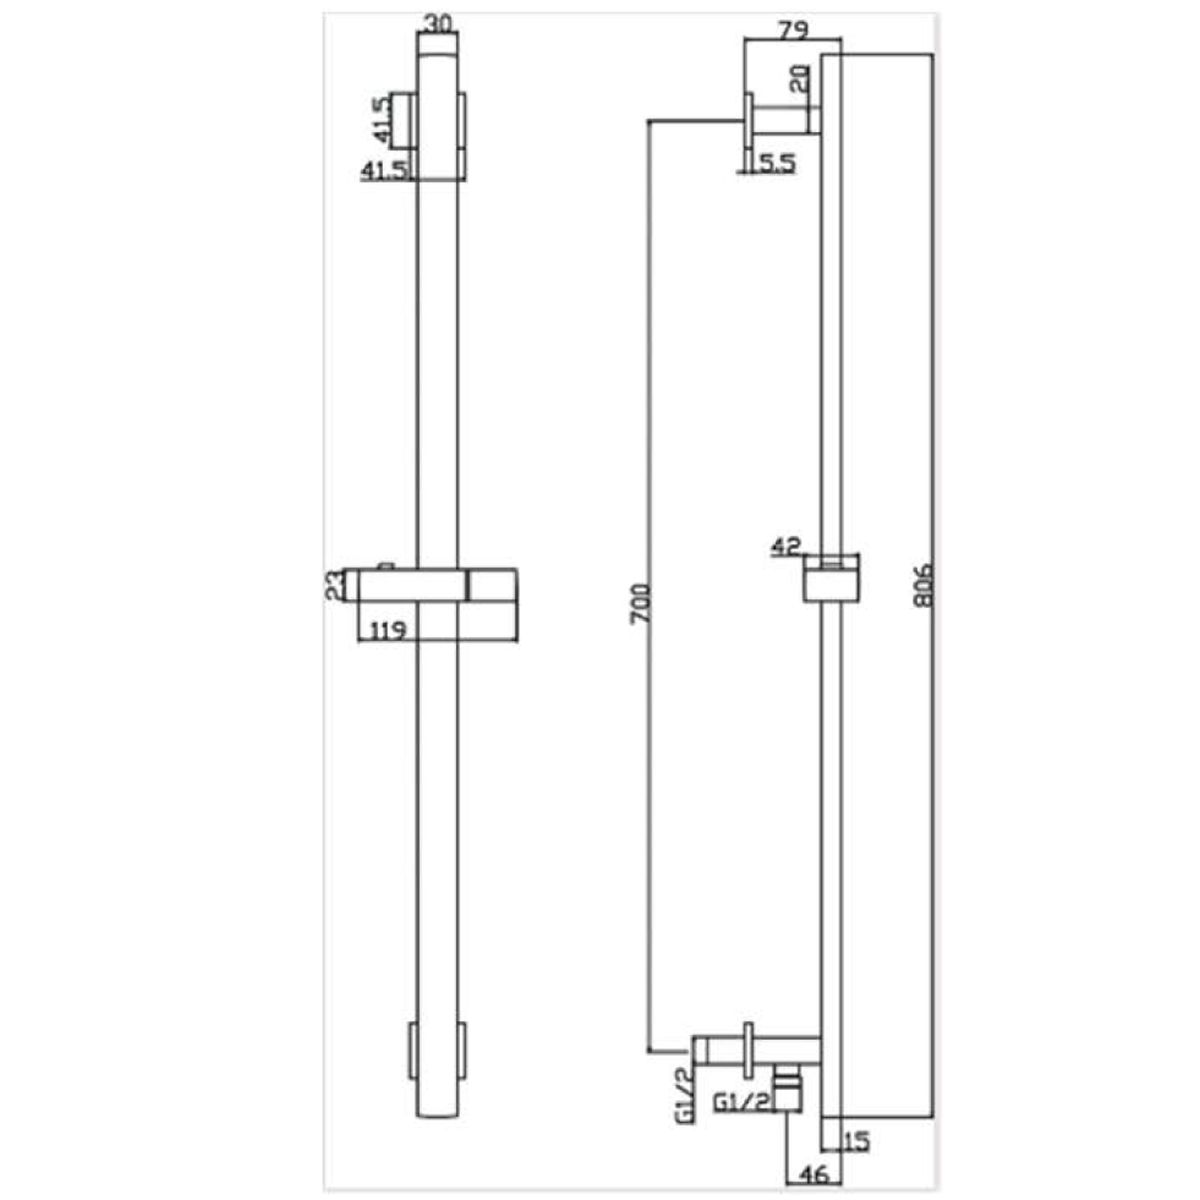 RAK Chrome Square Slide Rail Shower Kit with 3 Function Shower Head and Integral Wall Outlet Measurements